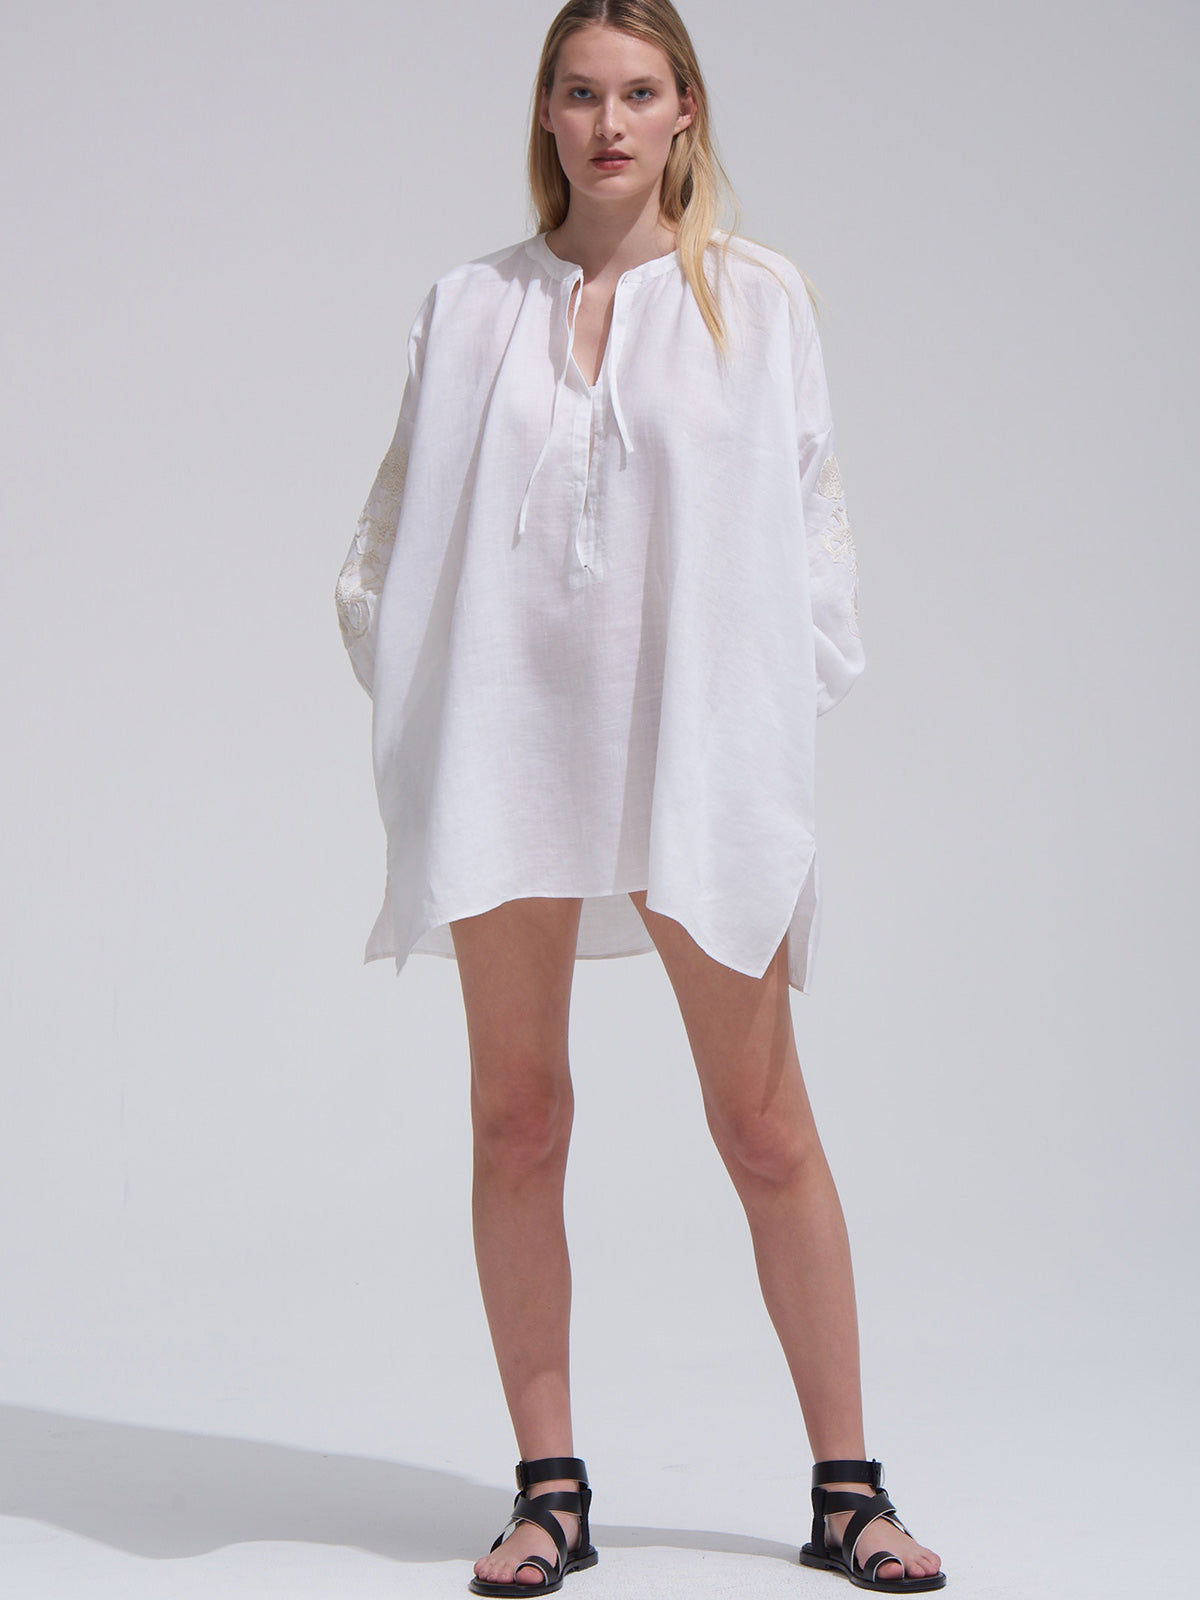 Wren Shirtdress